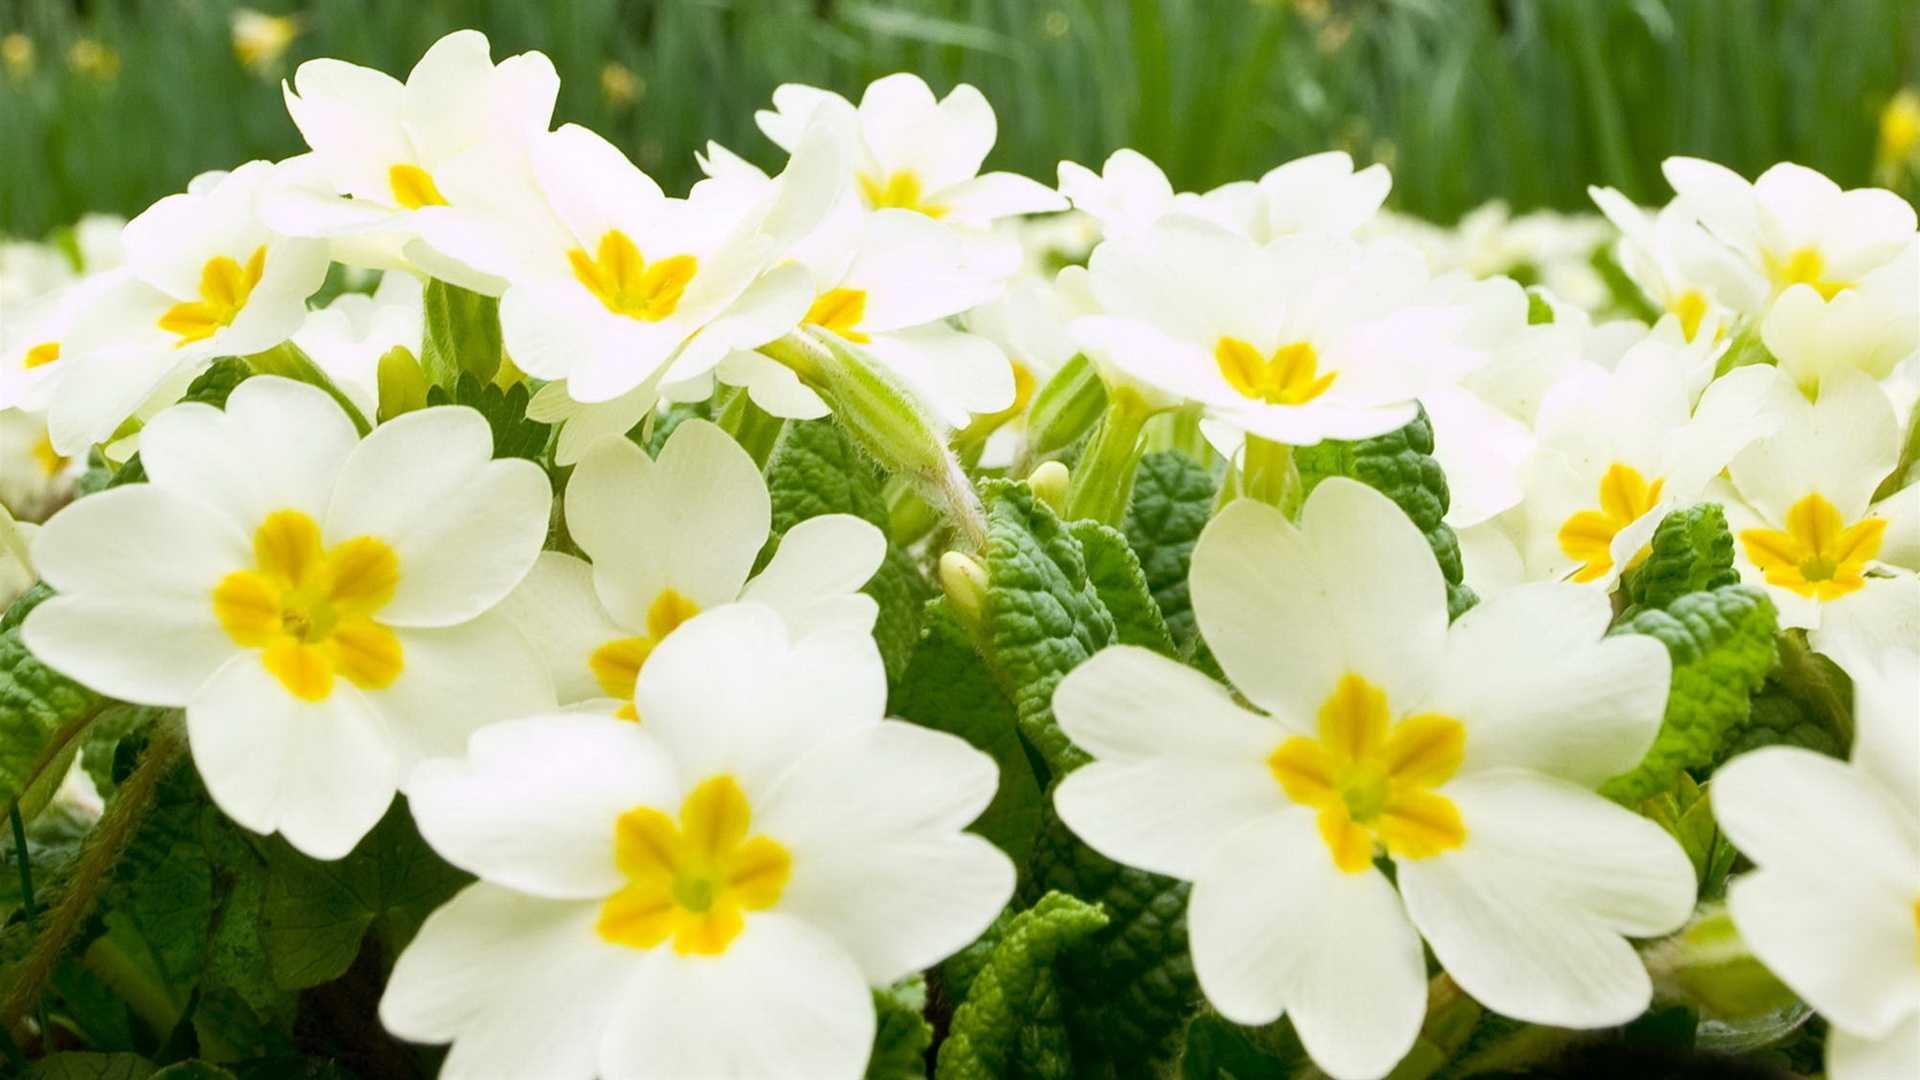 White Flowers Hd Wallpaper Backgrounds High Resolution For Computer ...